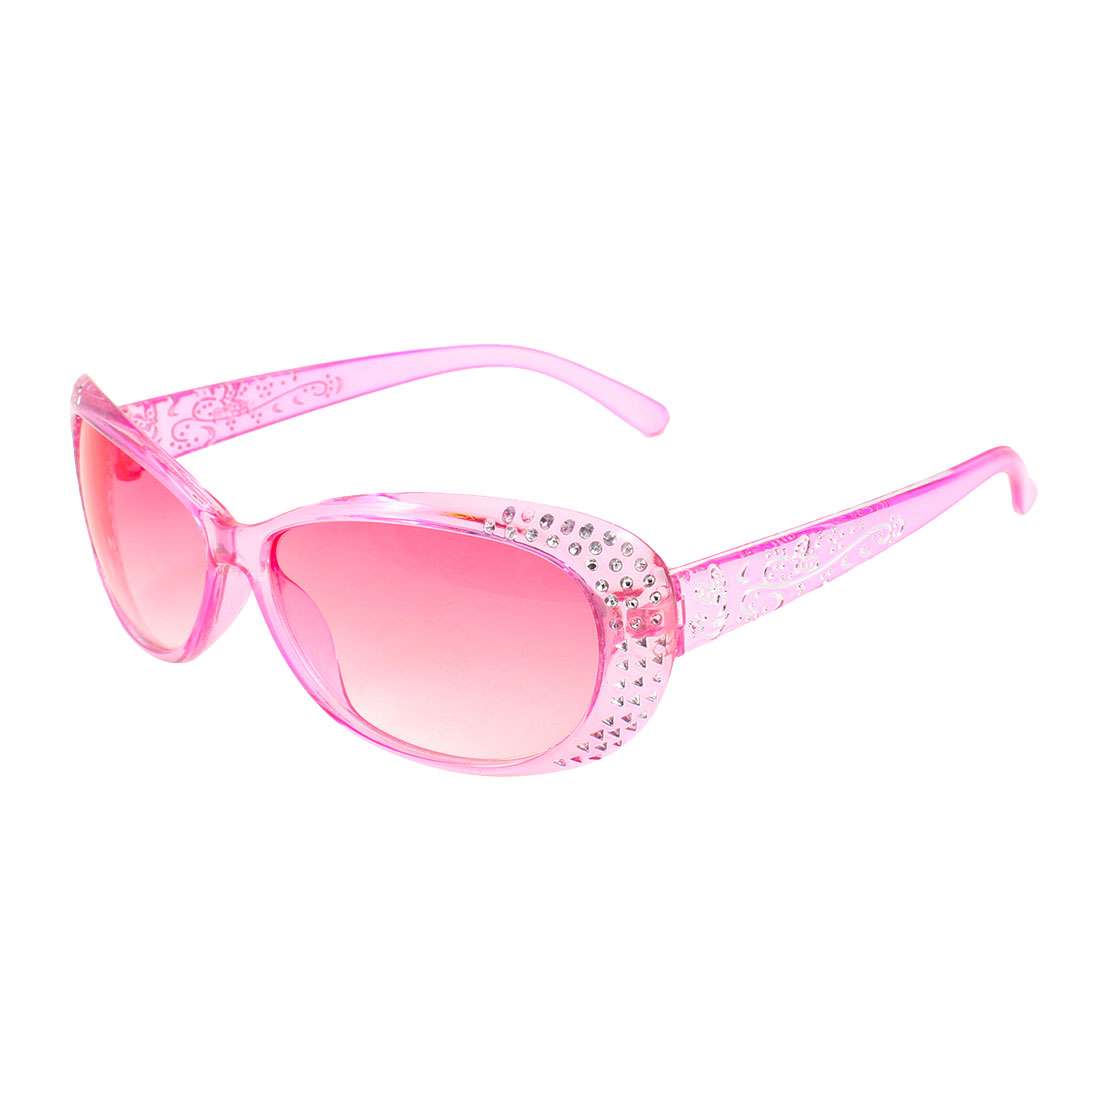 Outdoor Beach Woman Pink Oval Lens Eye Glasses Sunglasses Protector for Woman